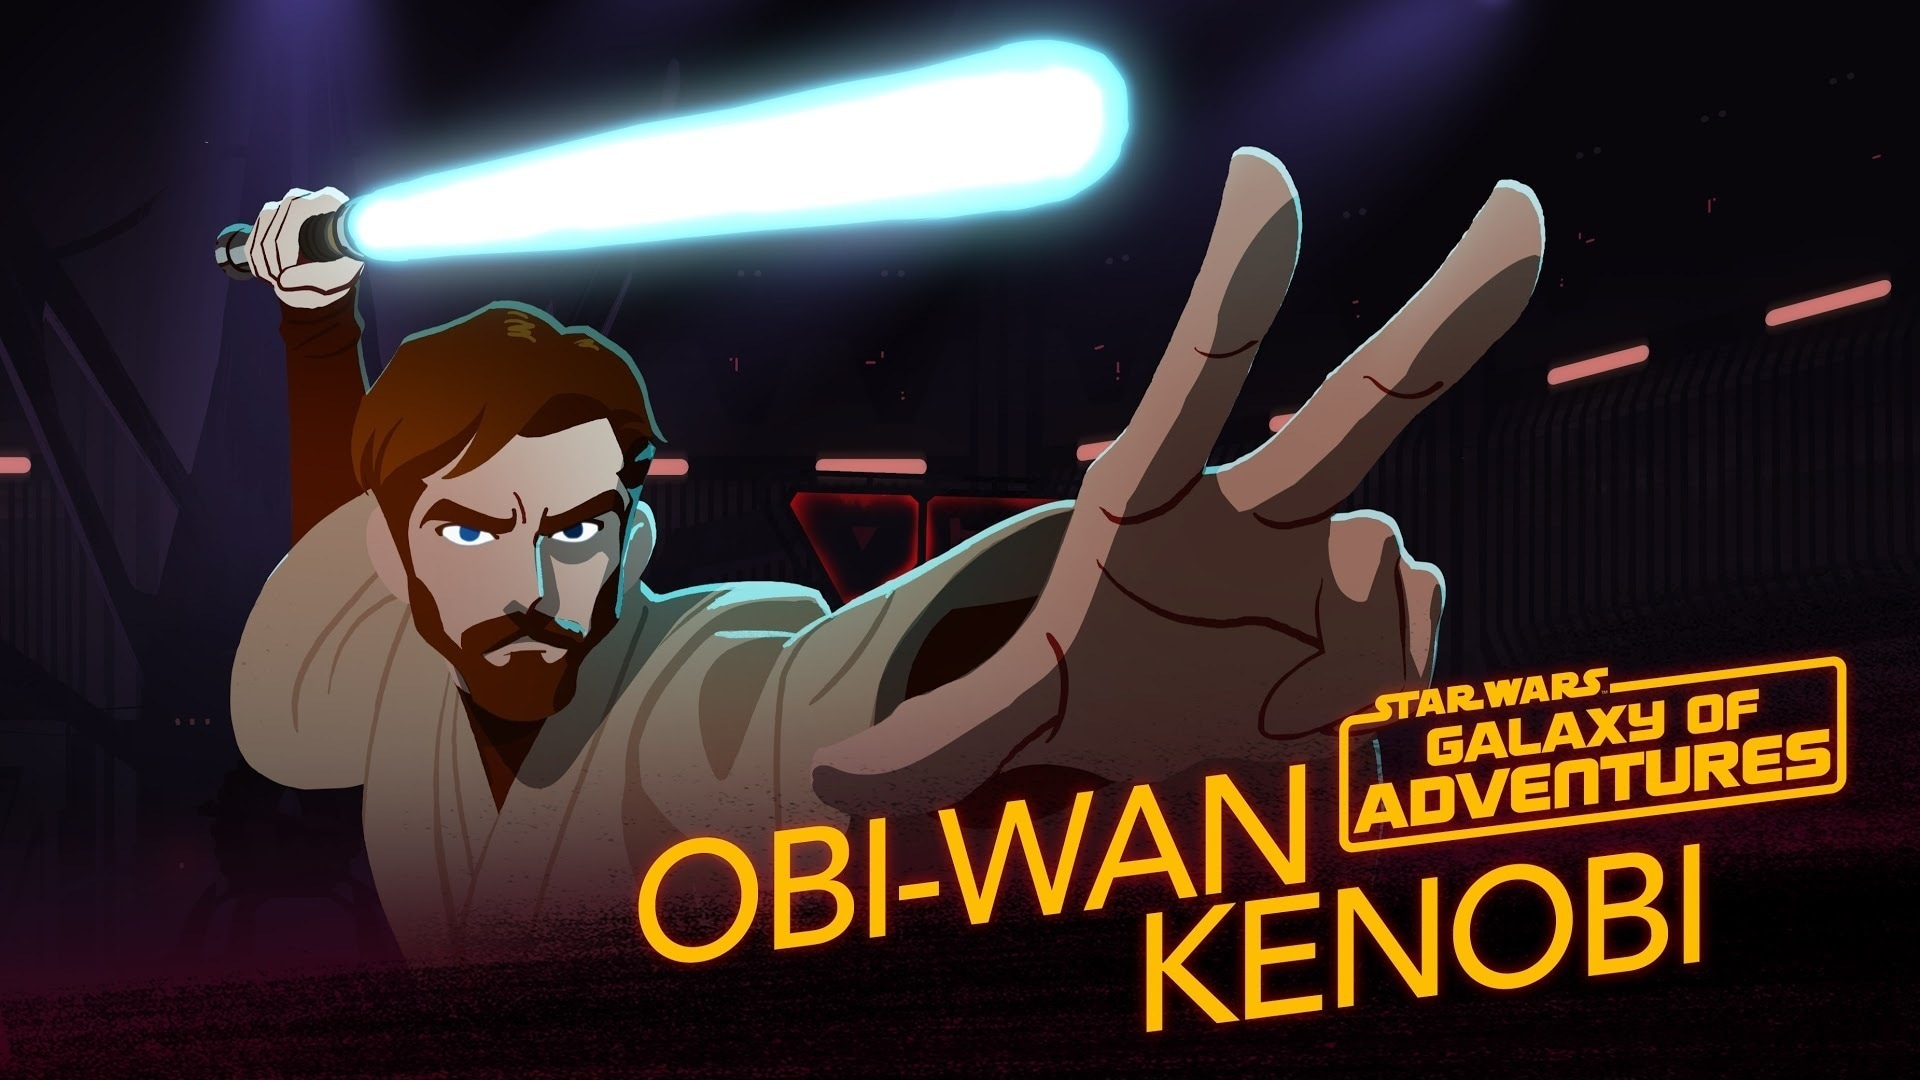 Obi-Wan Kenobi  | Star Wars Galaxy of Adventures